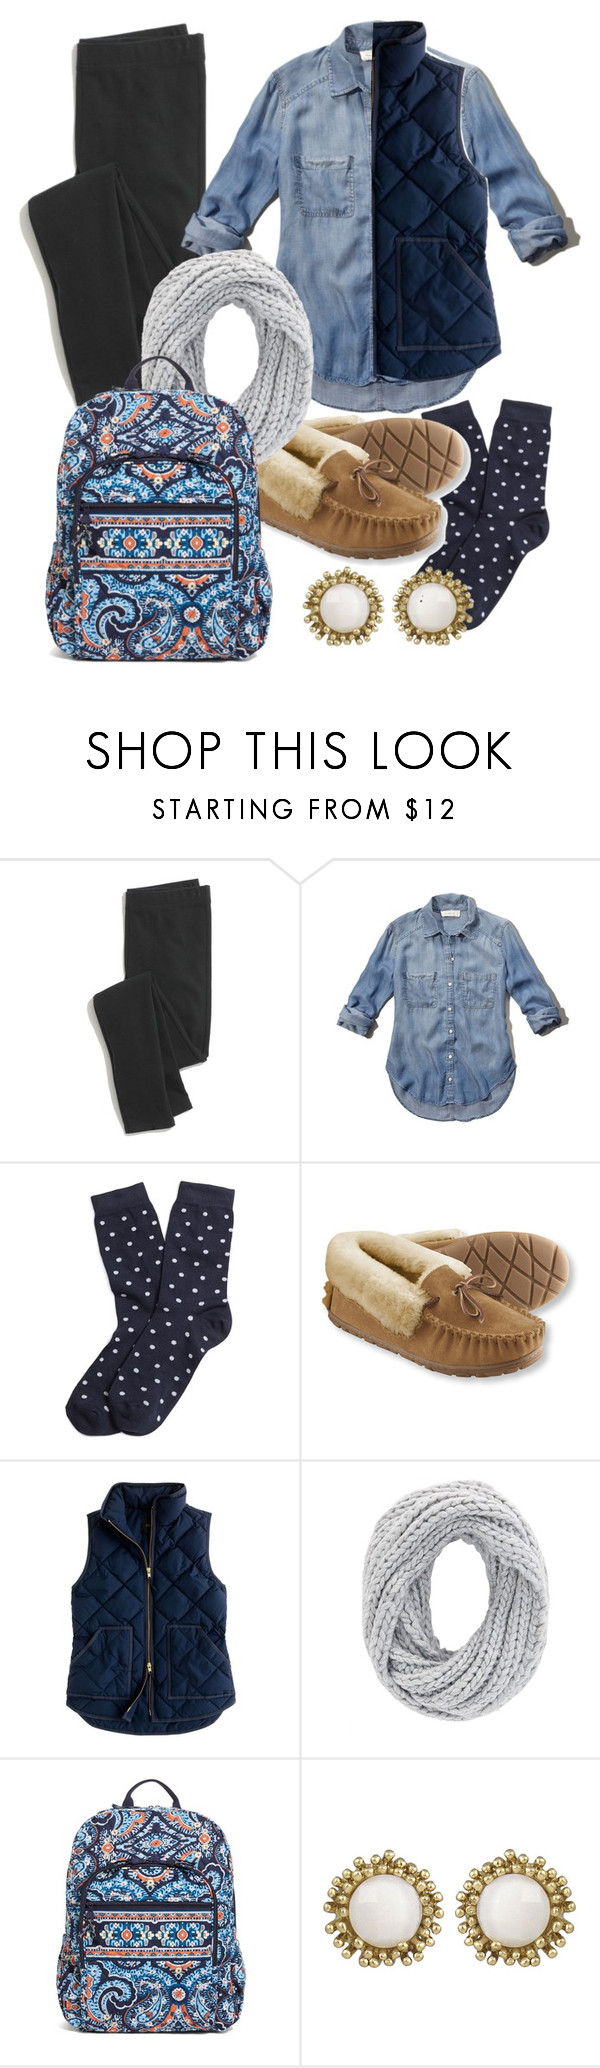 """Untitled #213"" by juliacm-bush ❤ liked on Polyvore featuring Madewell, Abercrombie & Fitch, Brooks Brothers, L.L.Bean, J.Crew, Charlotte Russe, Vera Bradley and Kendra Scott"